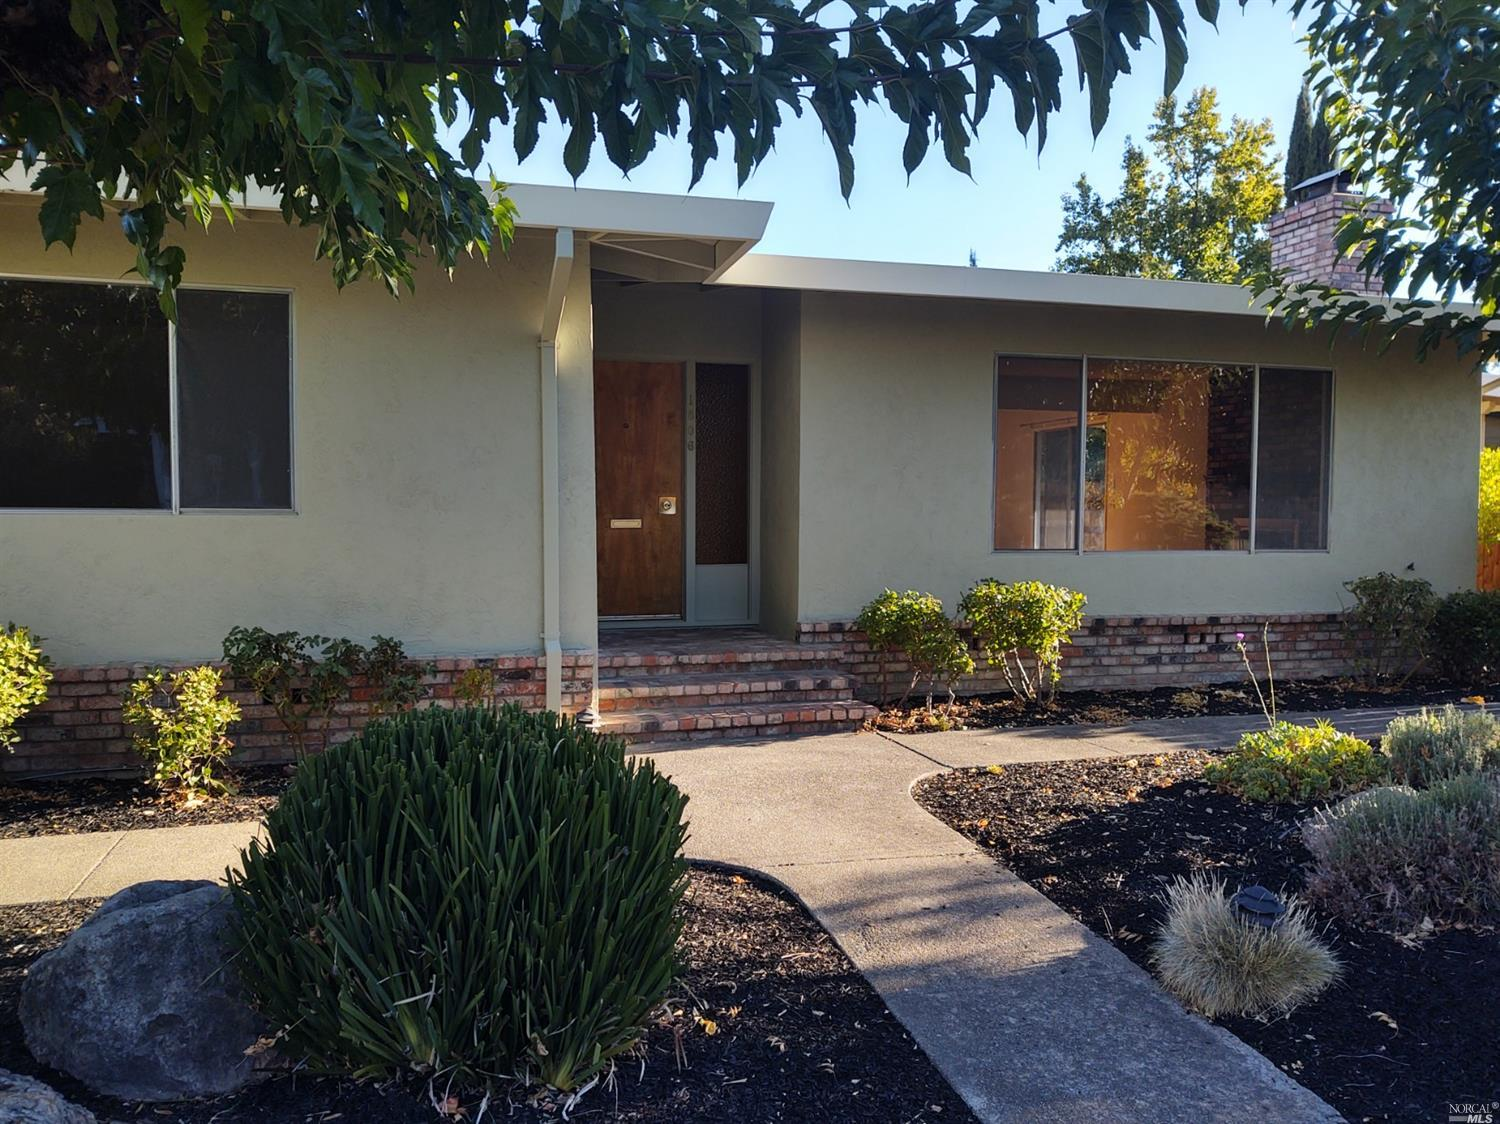 Cute cottage walking distance to downtown Calistoga. Fireplace with hardwood floors. New exterior paint. Gas range with open floorplan. Covered patio. New fencing. Newer furnace.